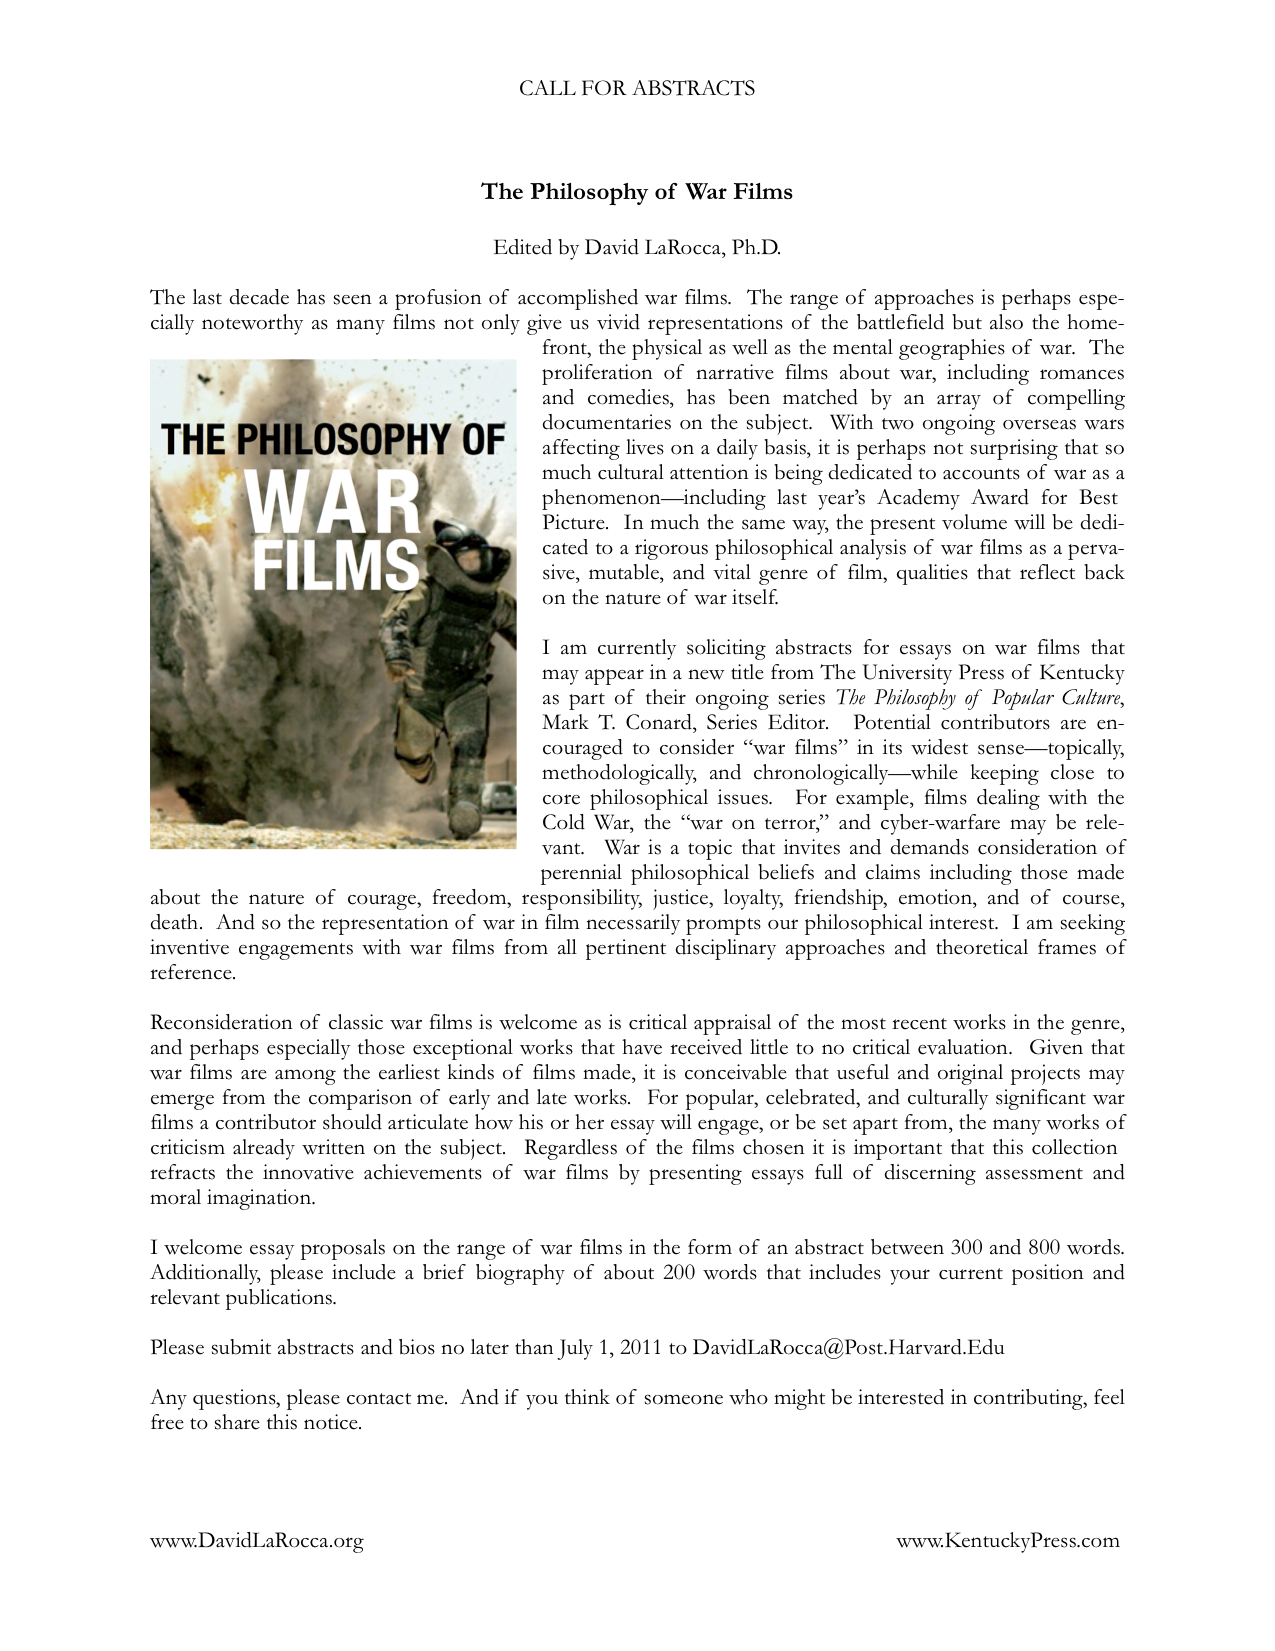 cfp essay collection on ldquo the philosophy of war films cfp essay collection on ldquothe philosophy of war filmsrdquo